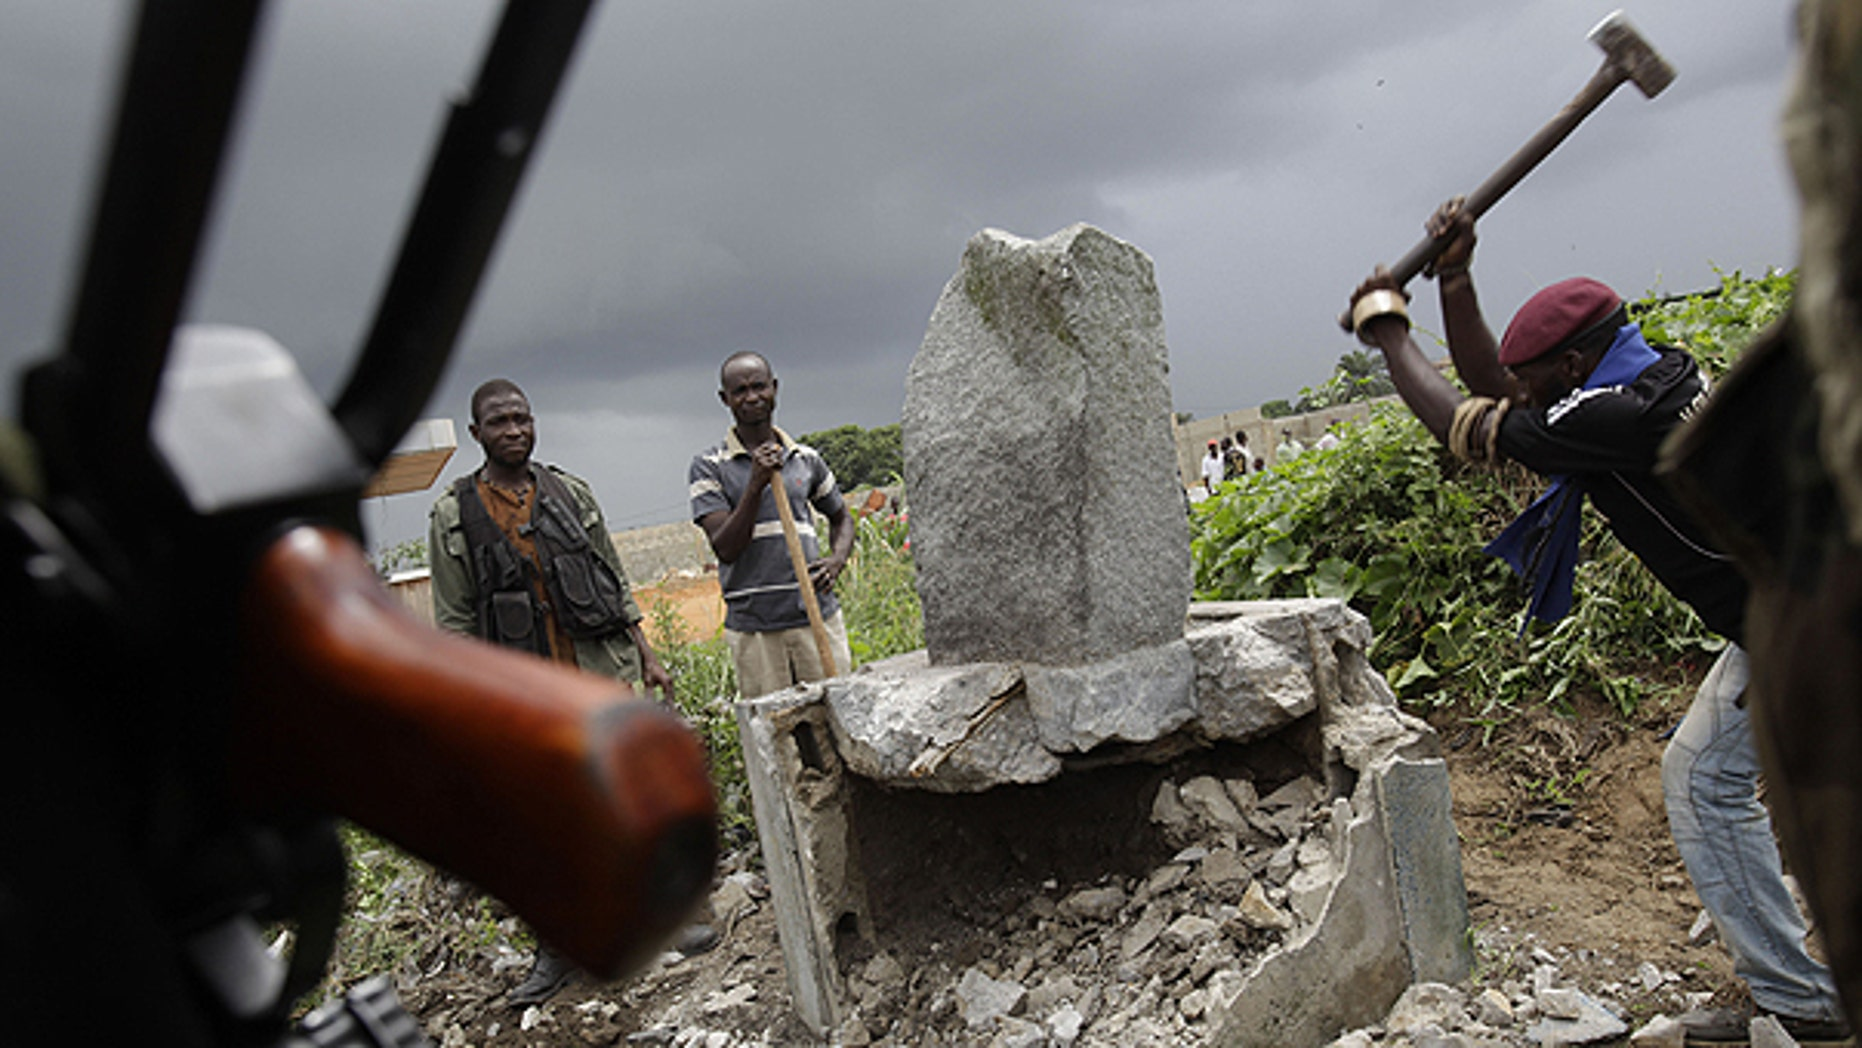 April 10: A soldier allied with Alassane Ouattara knocks down a monument believed to mystically provide strength and support to Laurent Gbagbo, in the Youpougon neighborhood of Abidjan, Ivory Coast.